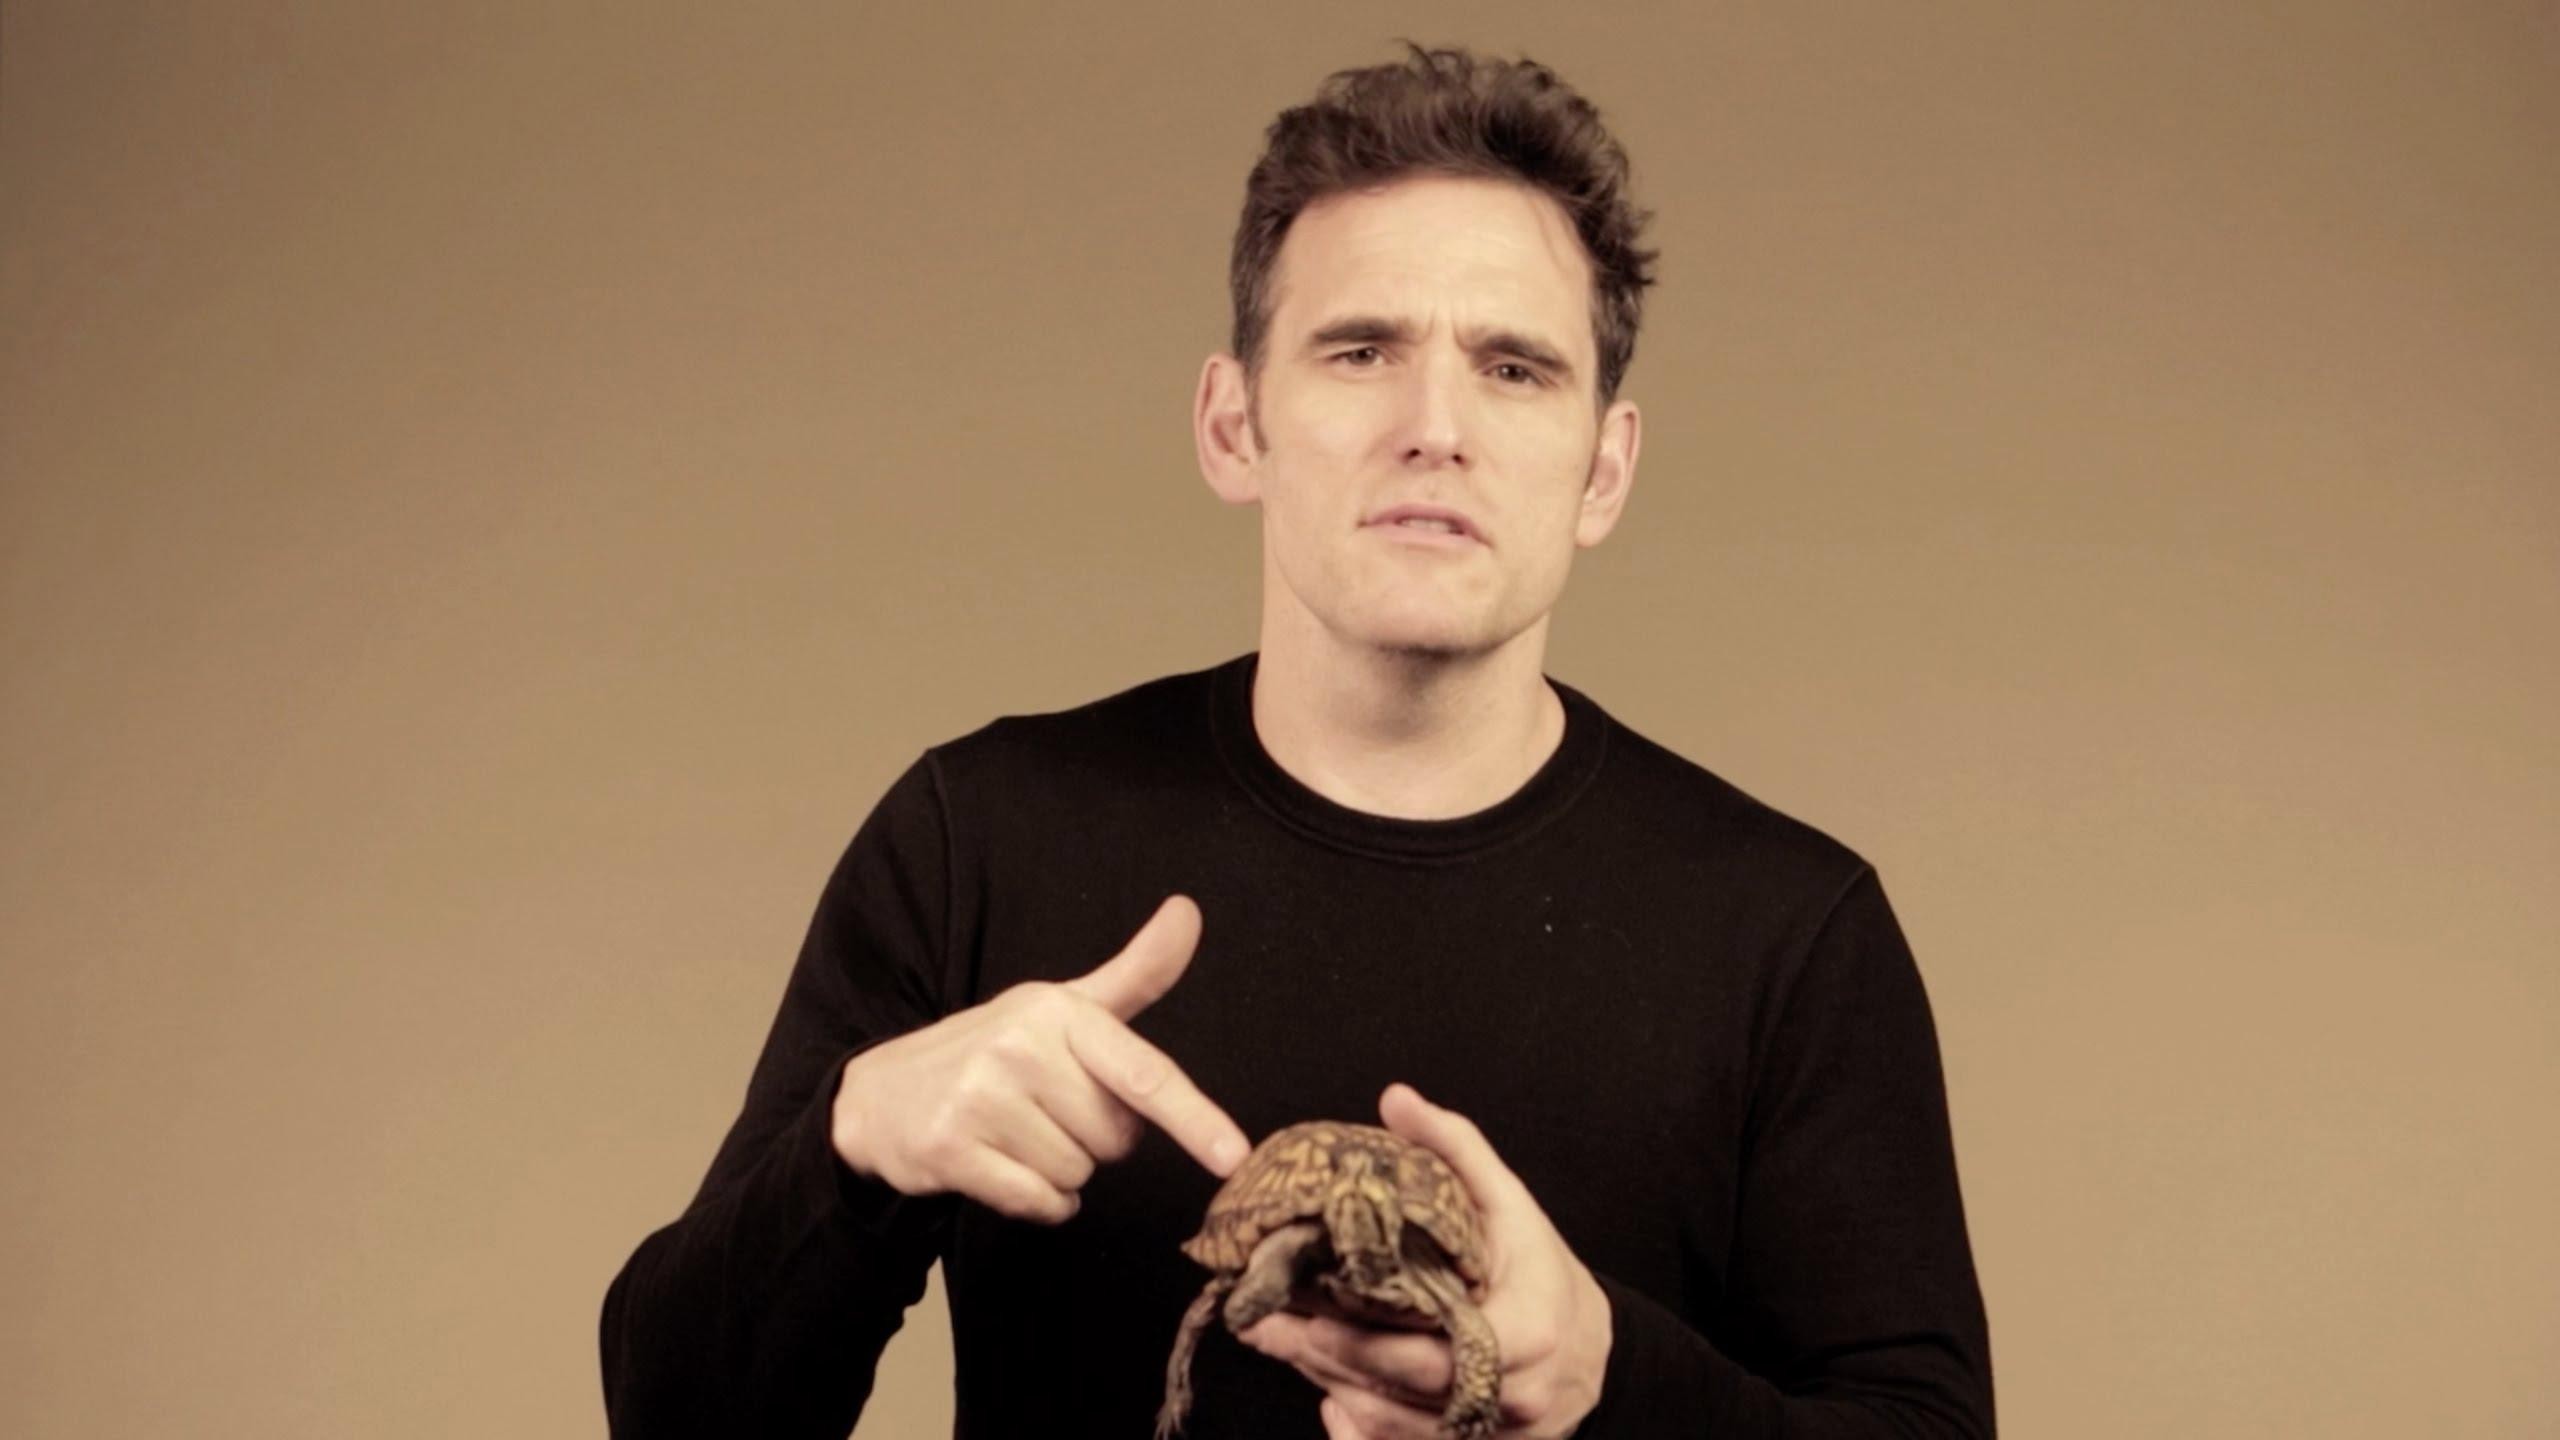 Pictures of Matt Dillon